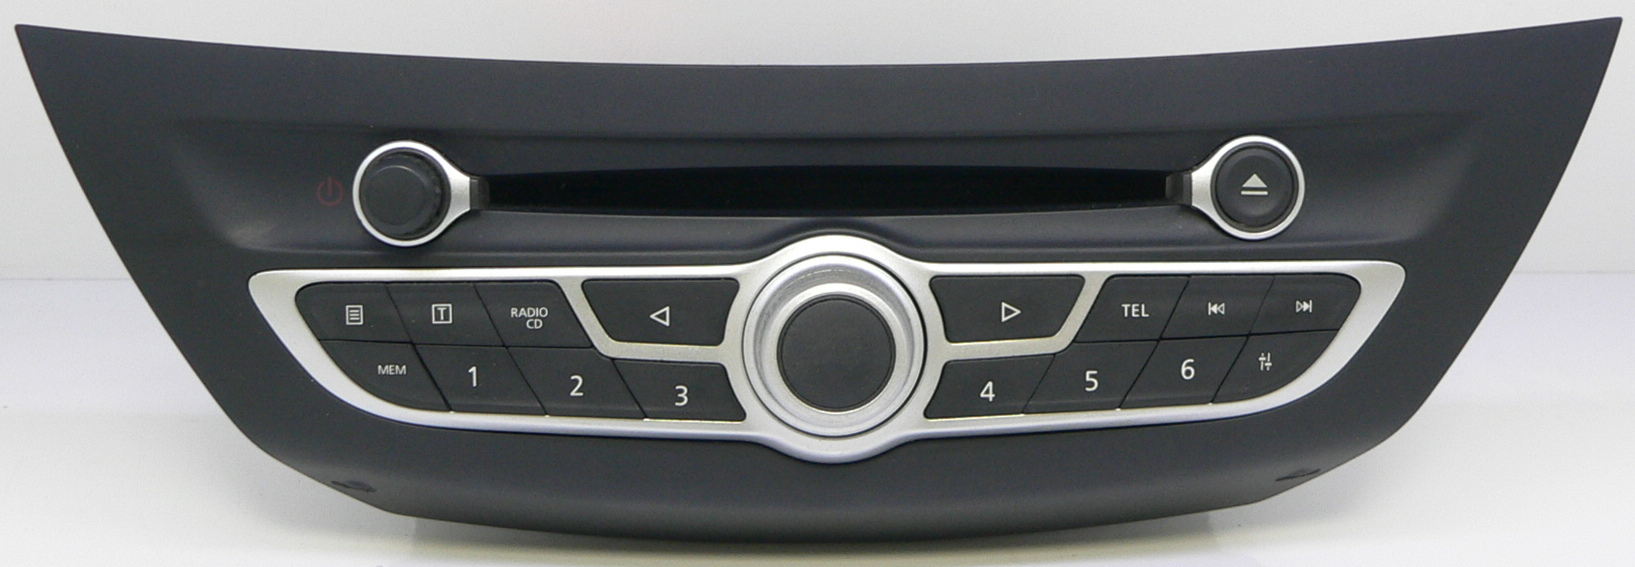 renault laguna 3 iii radio cd player odtwarzacz bluetooth. Black Bedroom Furniture Sets. Home Design Ideas